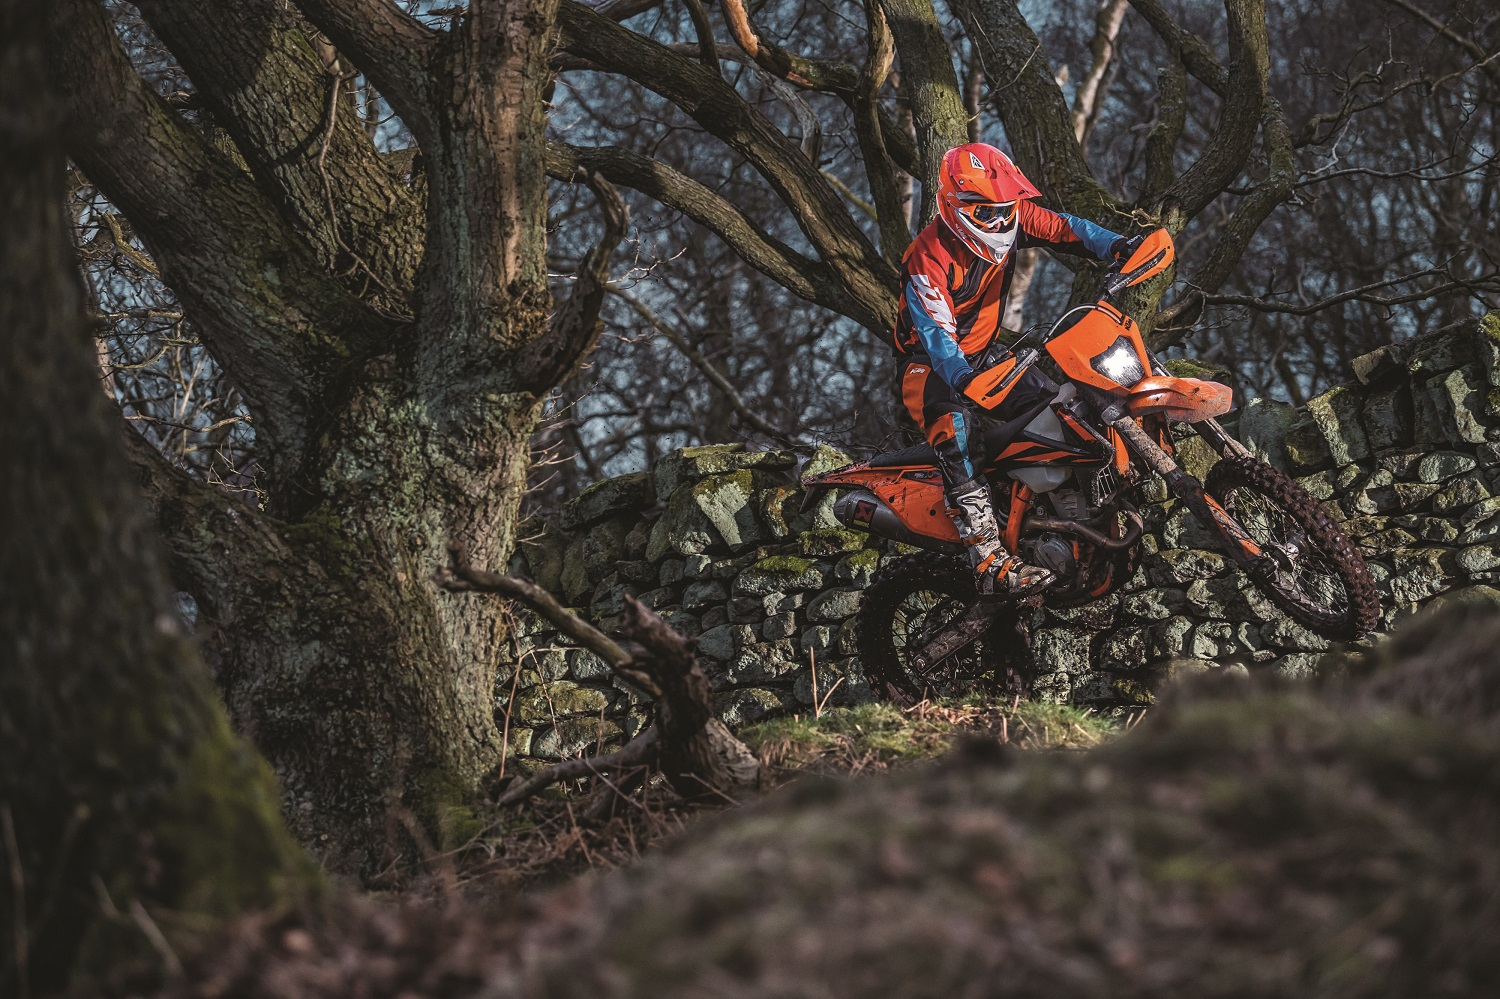 03_Action_KTM 350 EXC-F MY2019